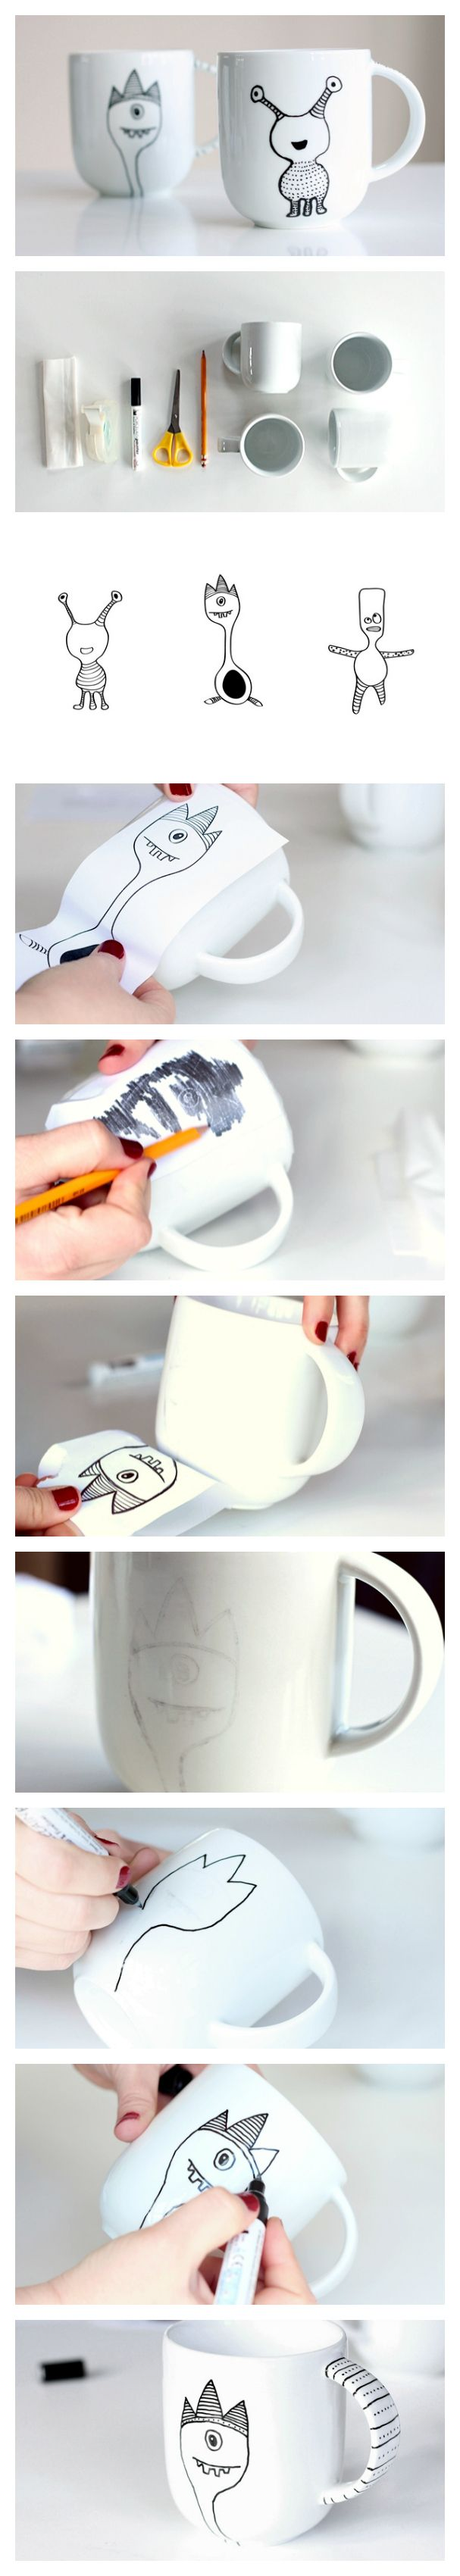 Learn how to decorate a coffee mug with a porcelain marker via craft.tutsplus.com. #FreeDownloadable #Craft #DIY #FreeTutorial #Mug #PorcelainMarker